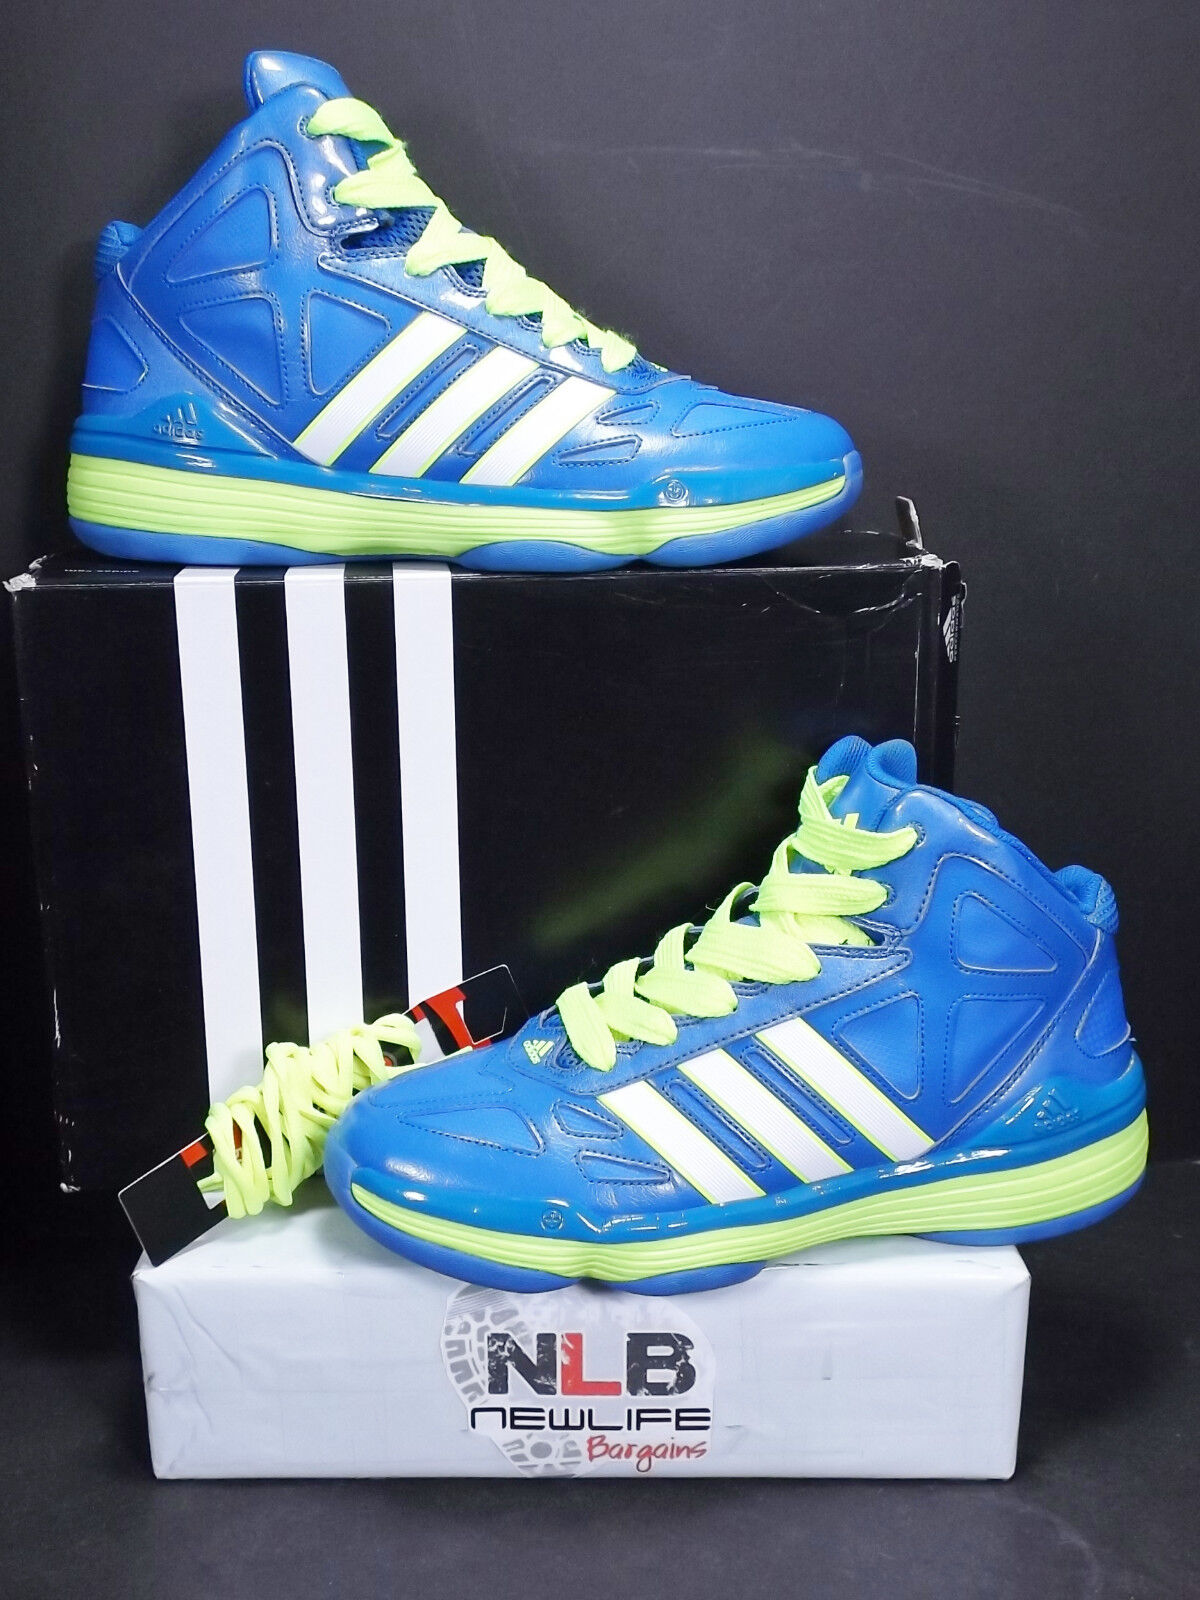 2013 Adidas Evader G98198 bluee Electricity Men's Size 12 EXTRA-LACES